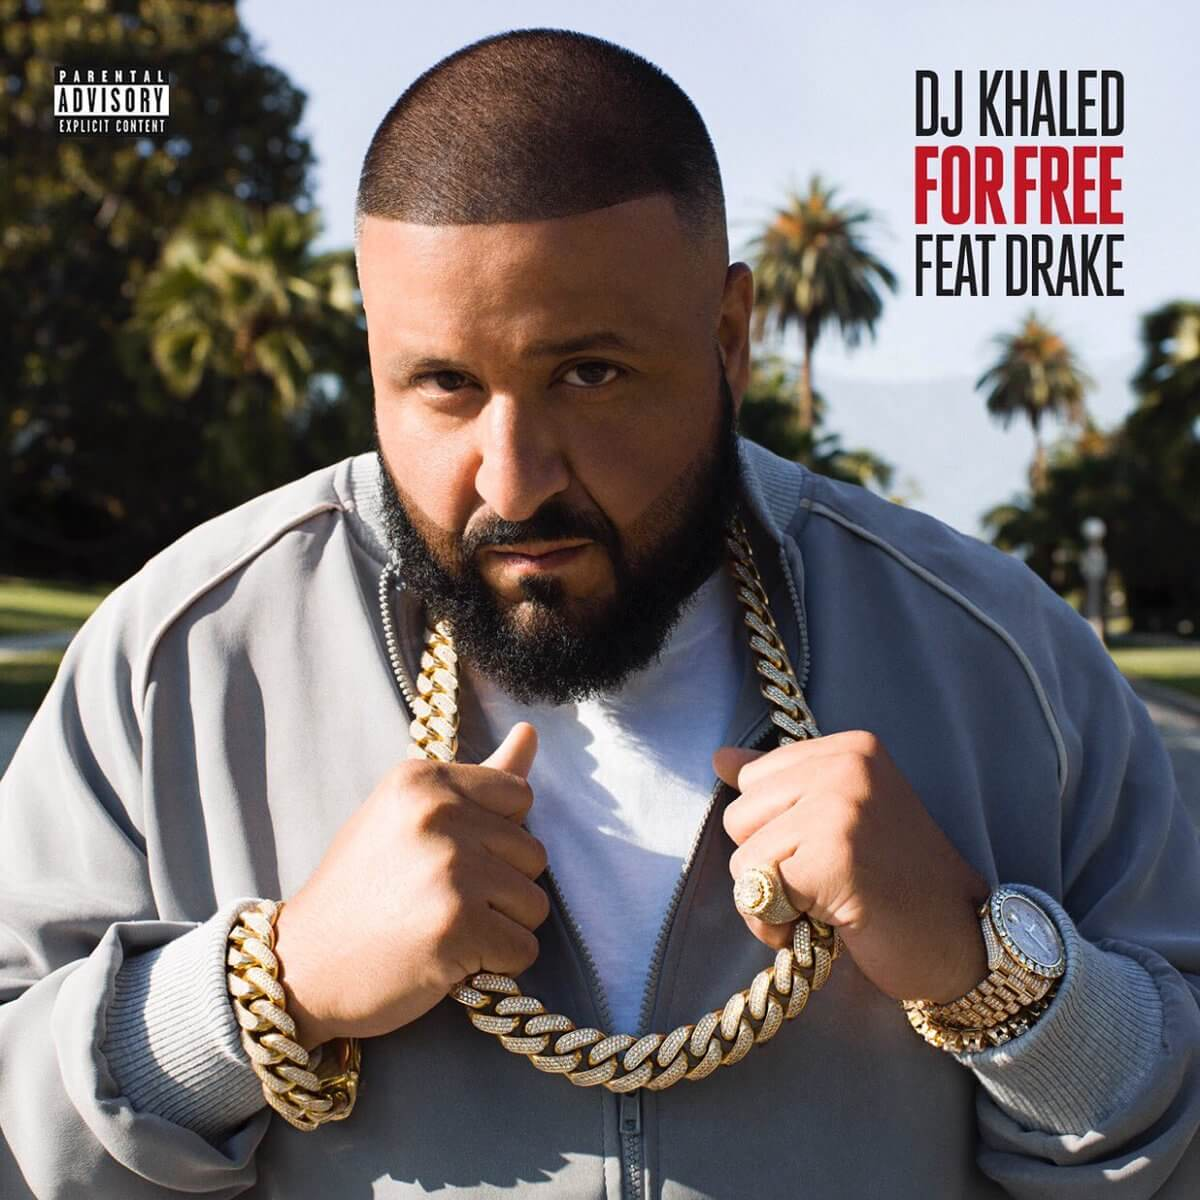 DJ Khaled - For Free f/ Drake [New Song]